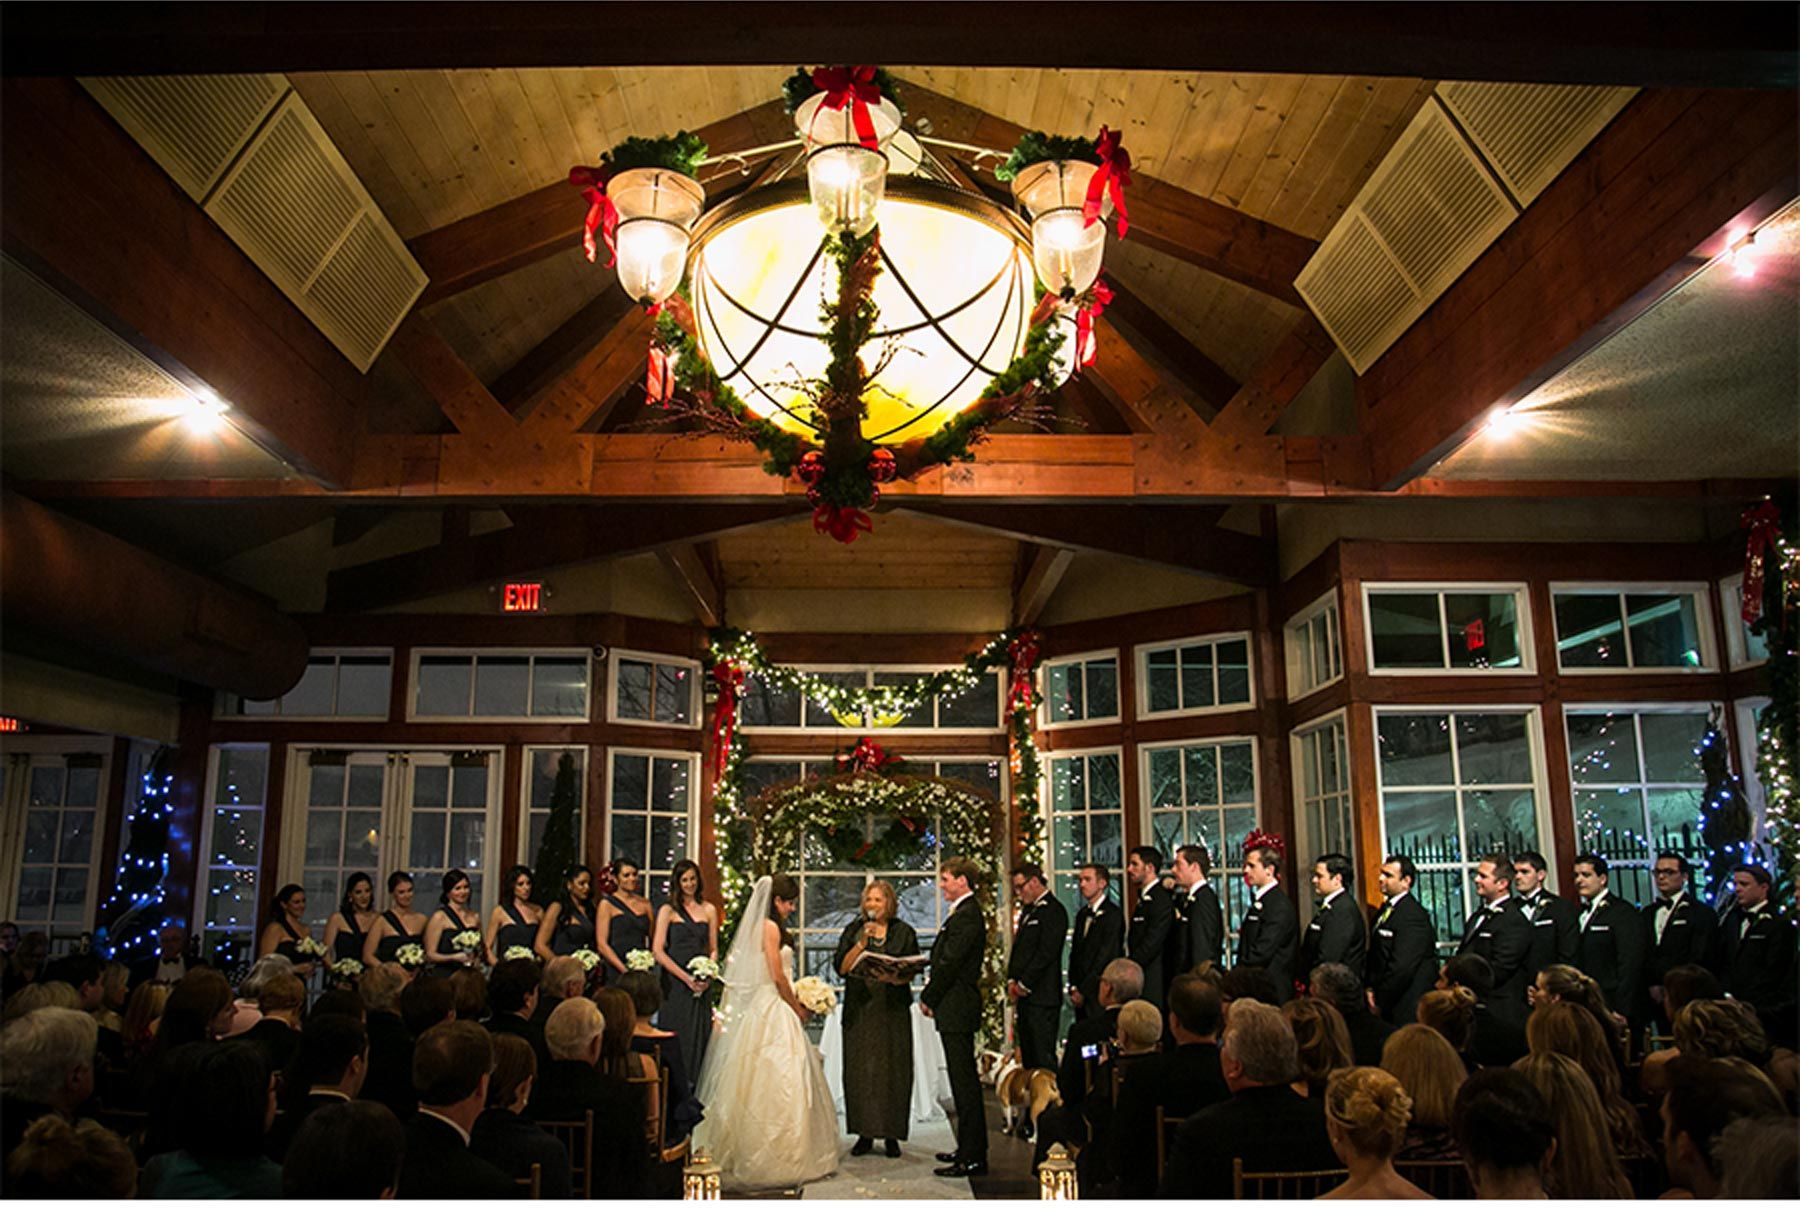 Winter Wedding at The Loeb Boathouse Central Park - Be inspired by ...